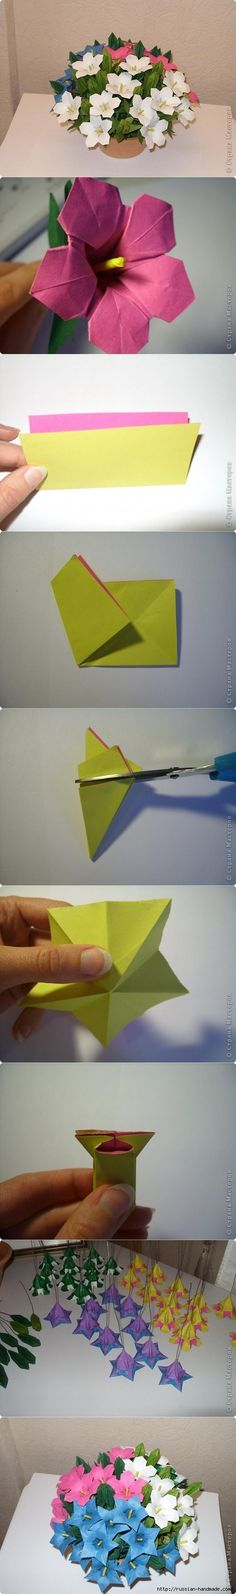 DIY Beautiful Paper Origami Lily Flower Bouquet | www.FabArtDIY.com LIKE Us on Facebook == https://www.facebook.com/FabArtDIY